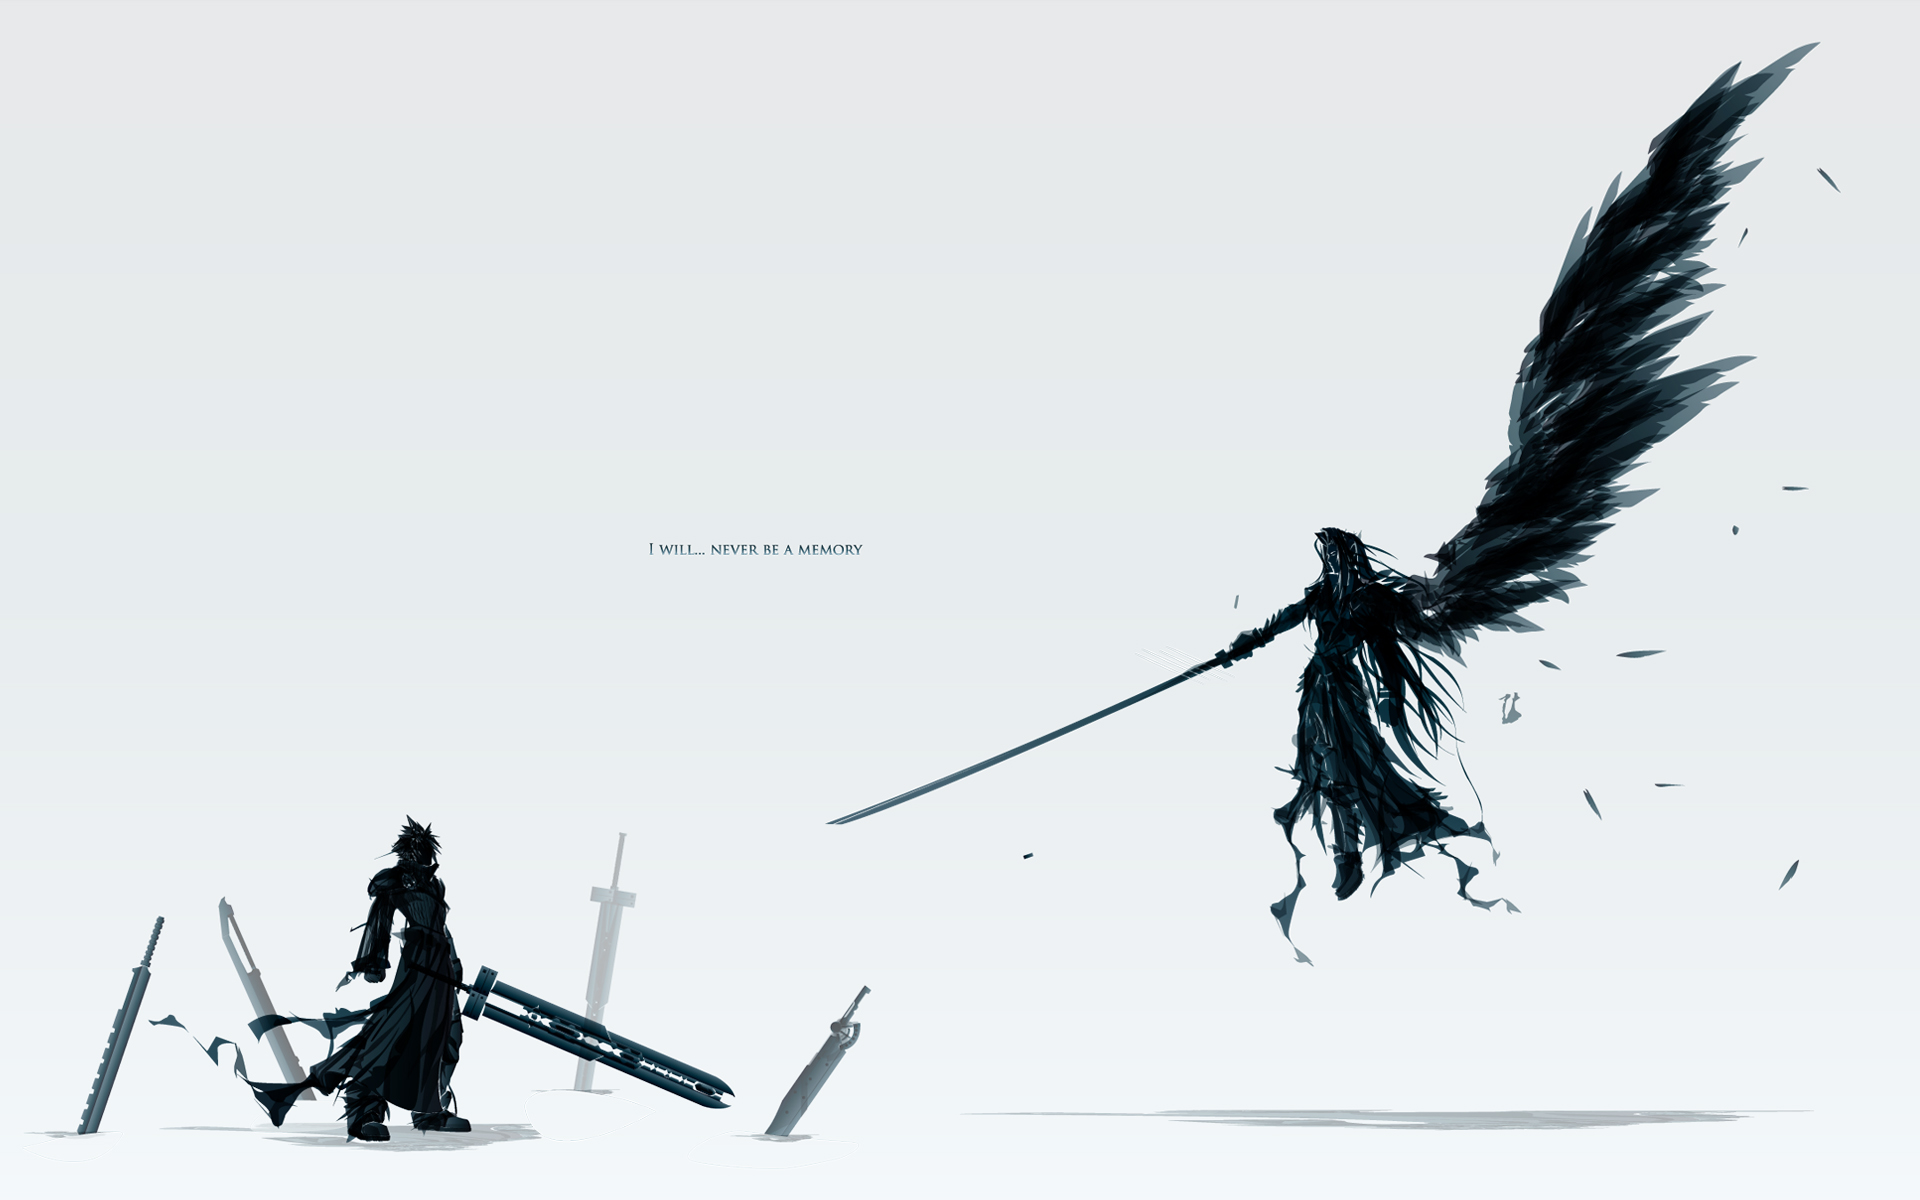 Final fantasy vii wallpaper zerochan anime image board final fantasy vii altavistaventures Gallery